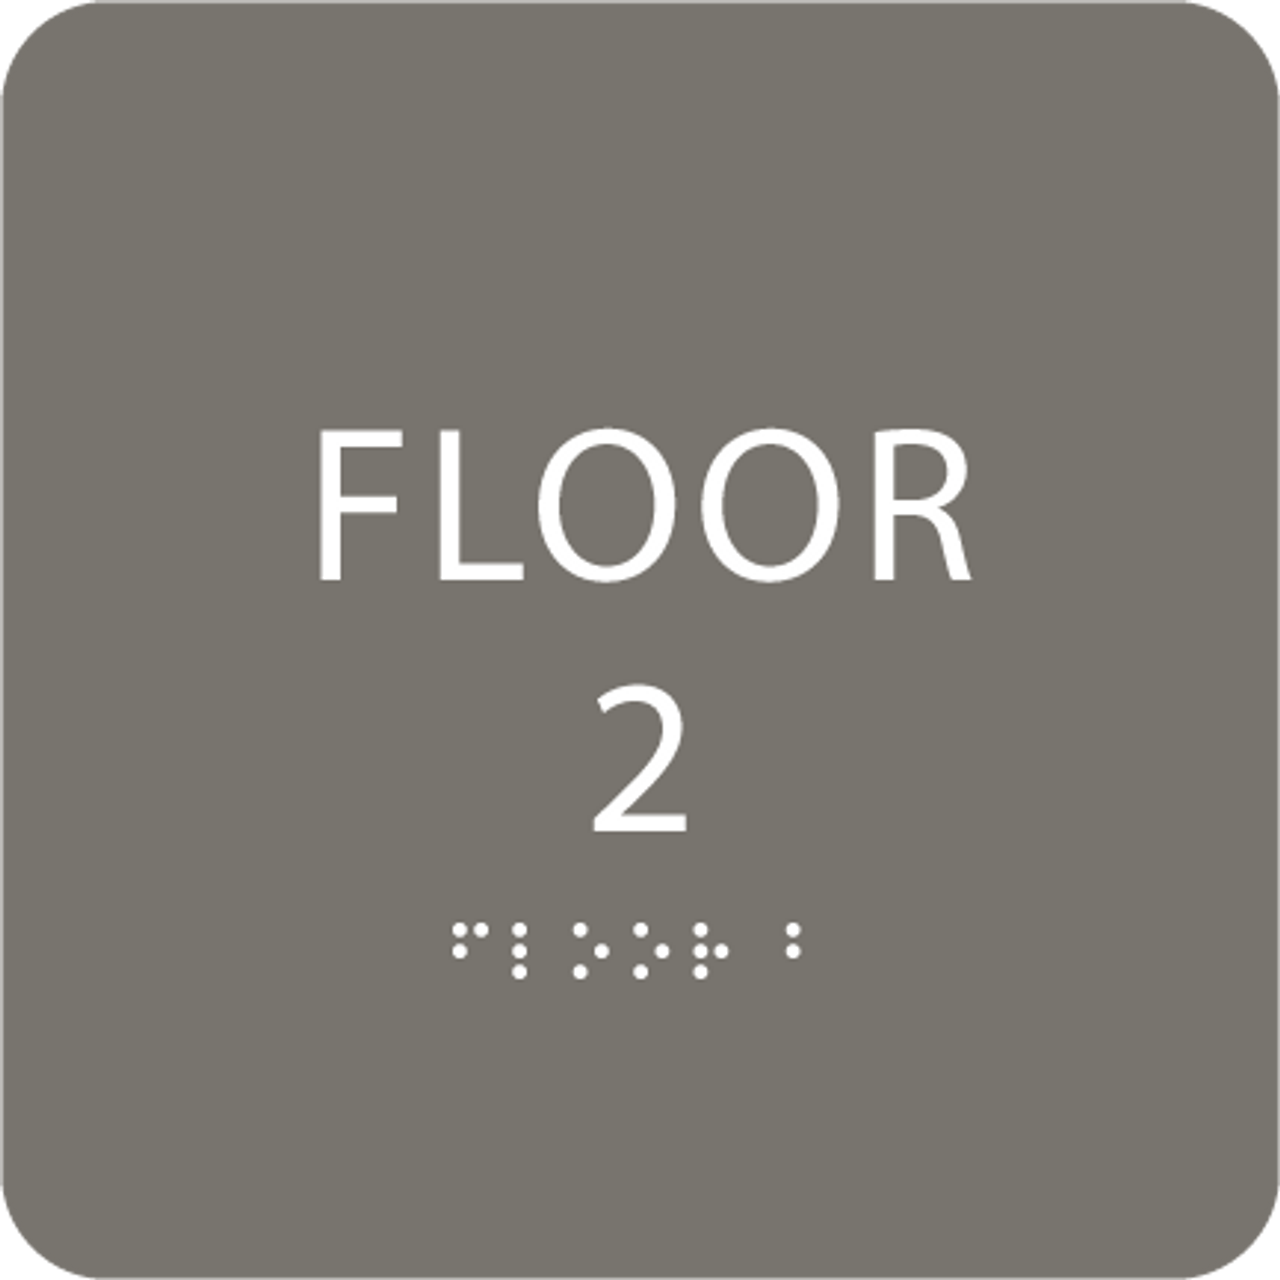 Dark Grey Floor 2 Identification Sign